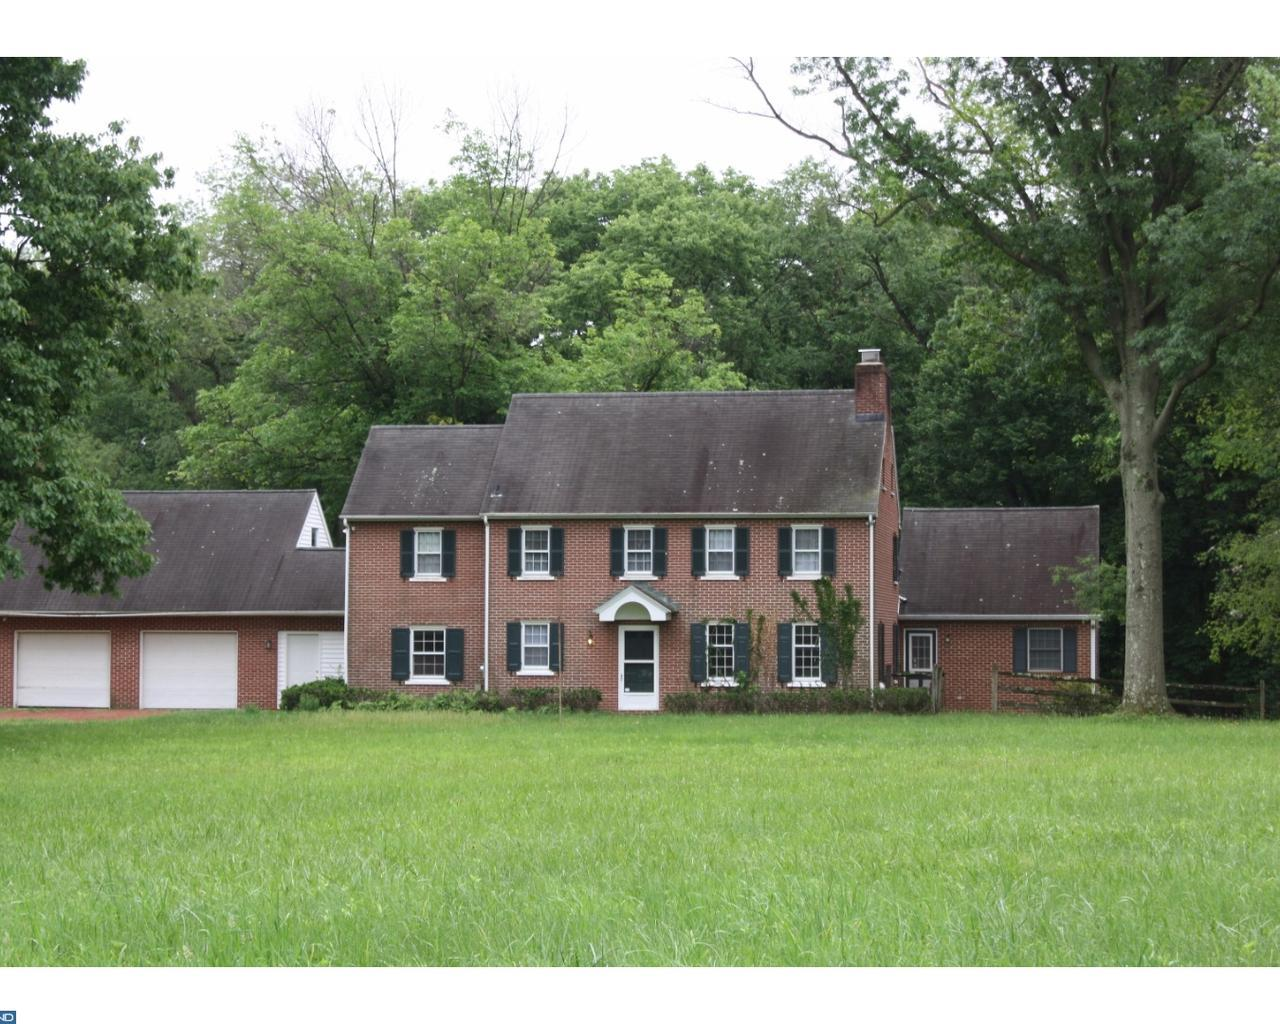 Property for sale at 639 PATRIOT LN, Phoenixville,  PA 19460